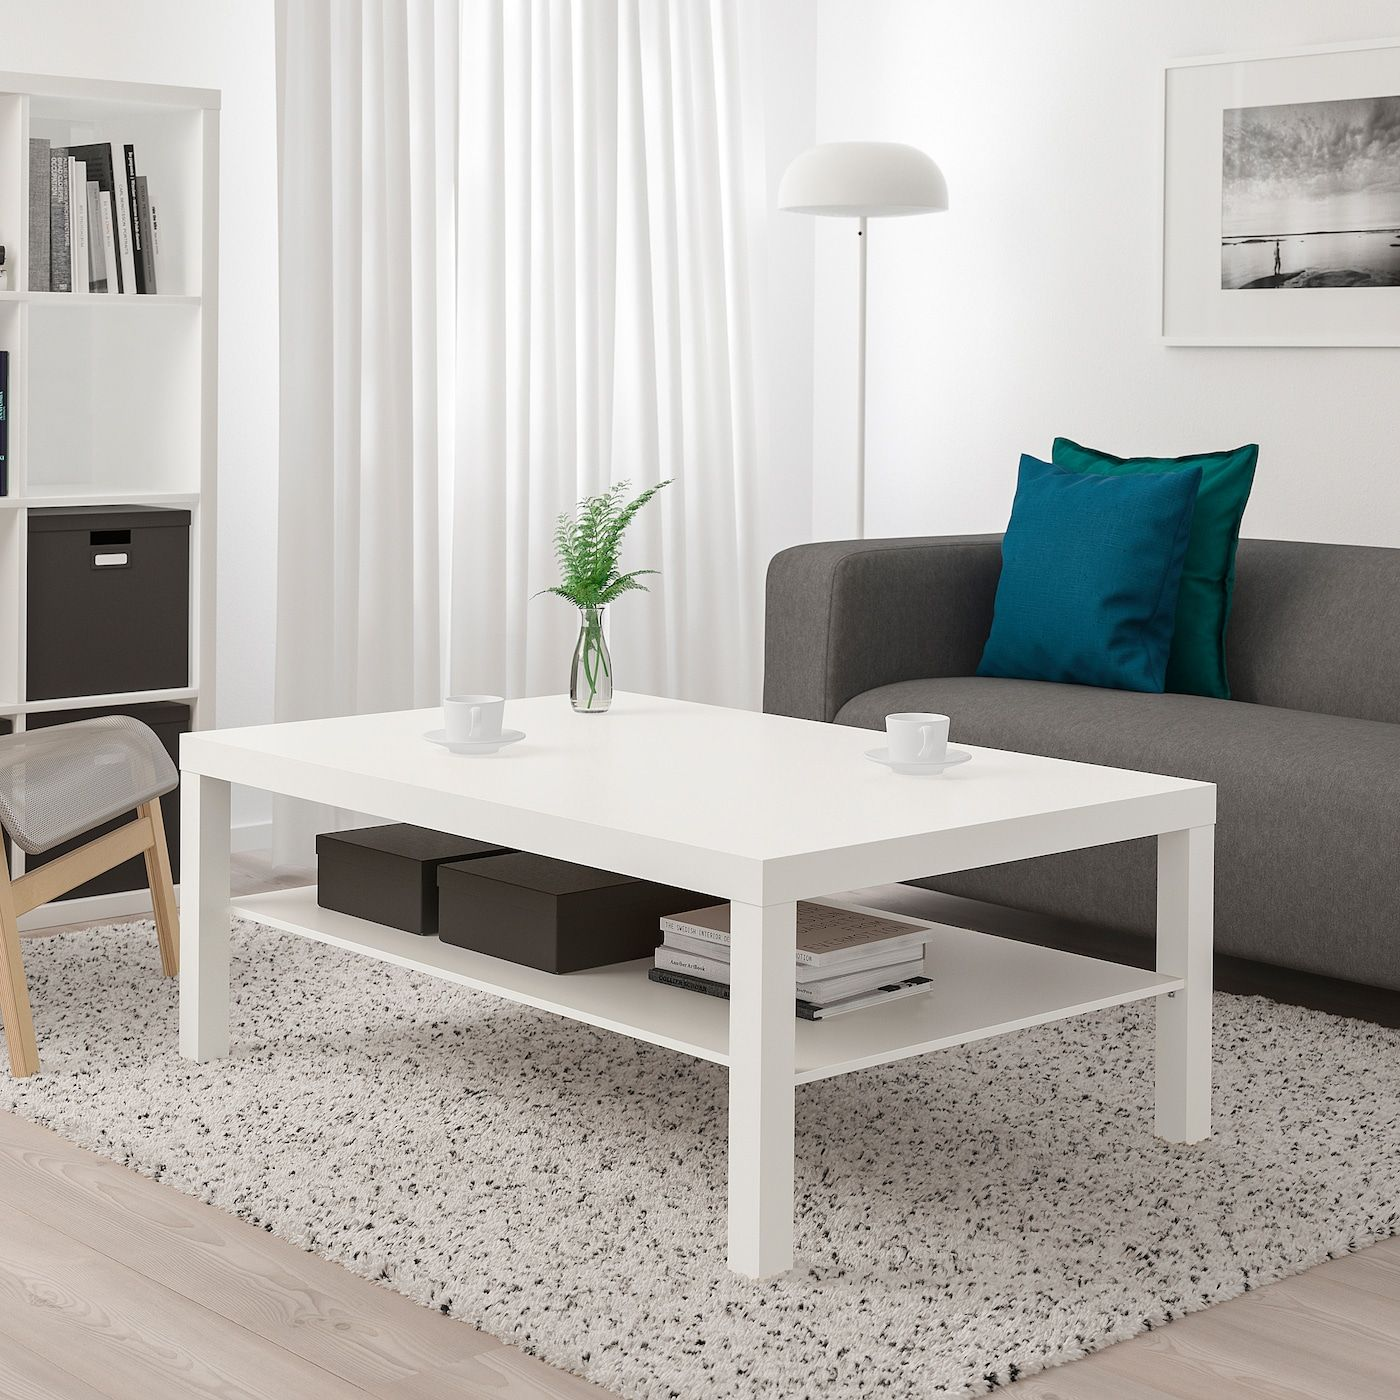 """LACK Coffee table, white, 46 1/2x30 3/4"""" IKEA in 2020"""